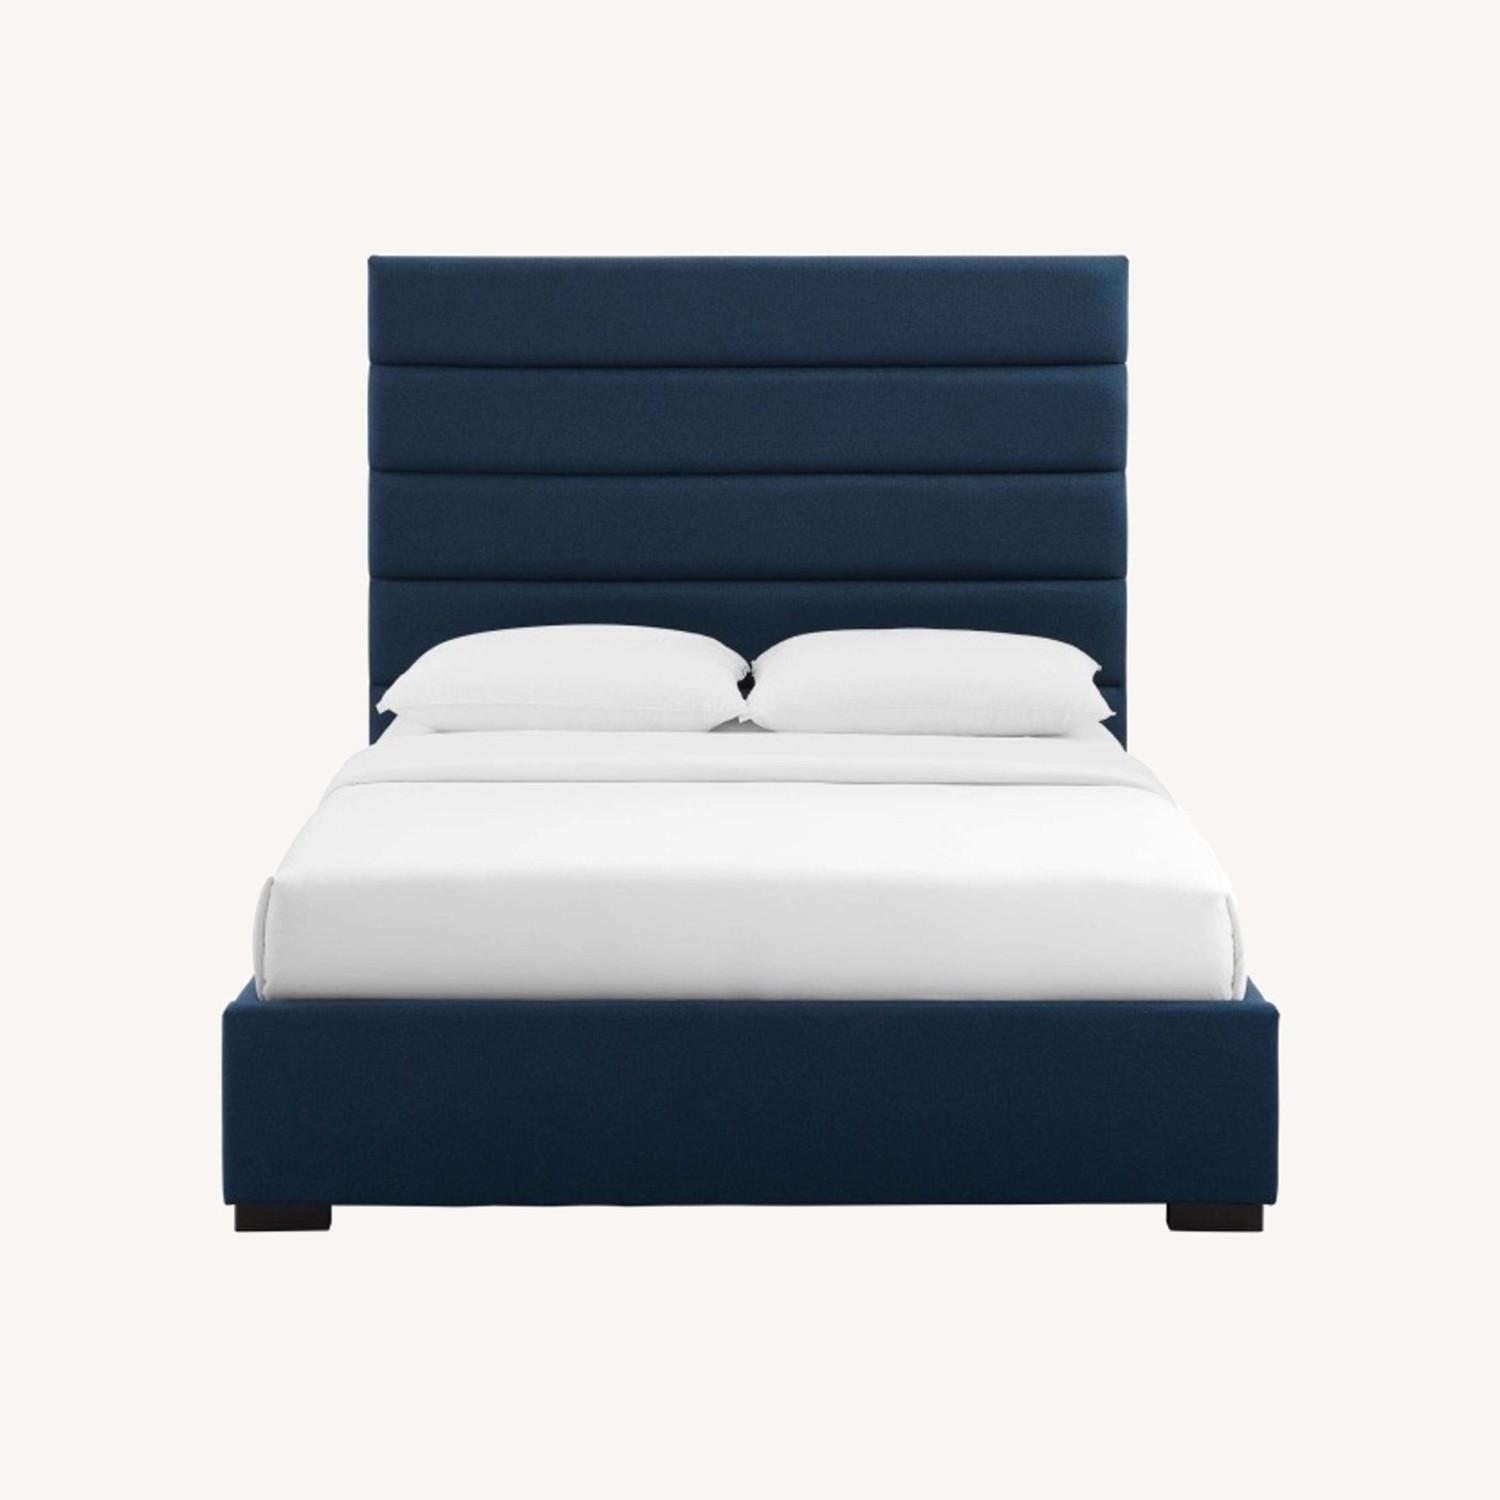 Modway Genevieve Upholstered Queen Bed - image-0